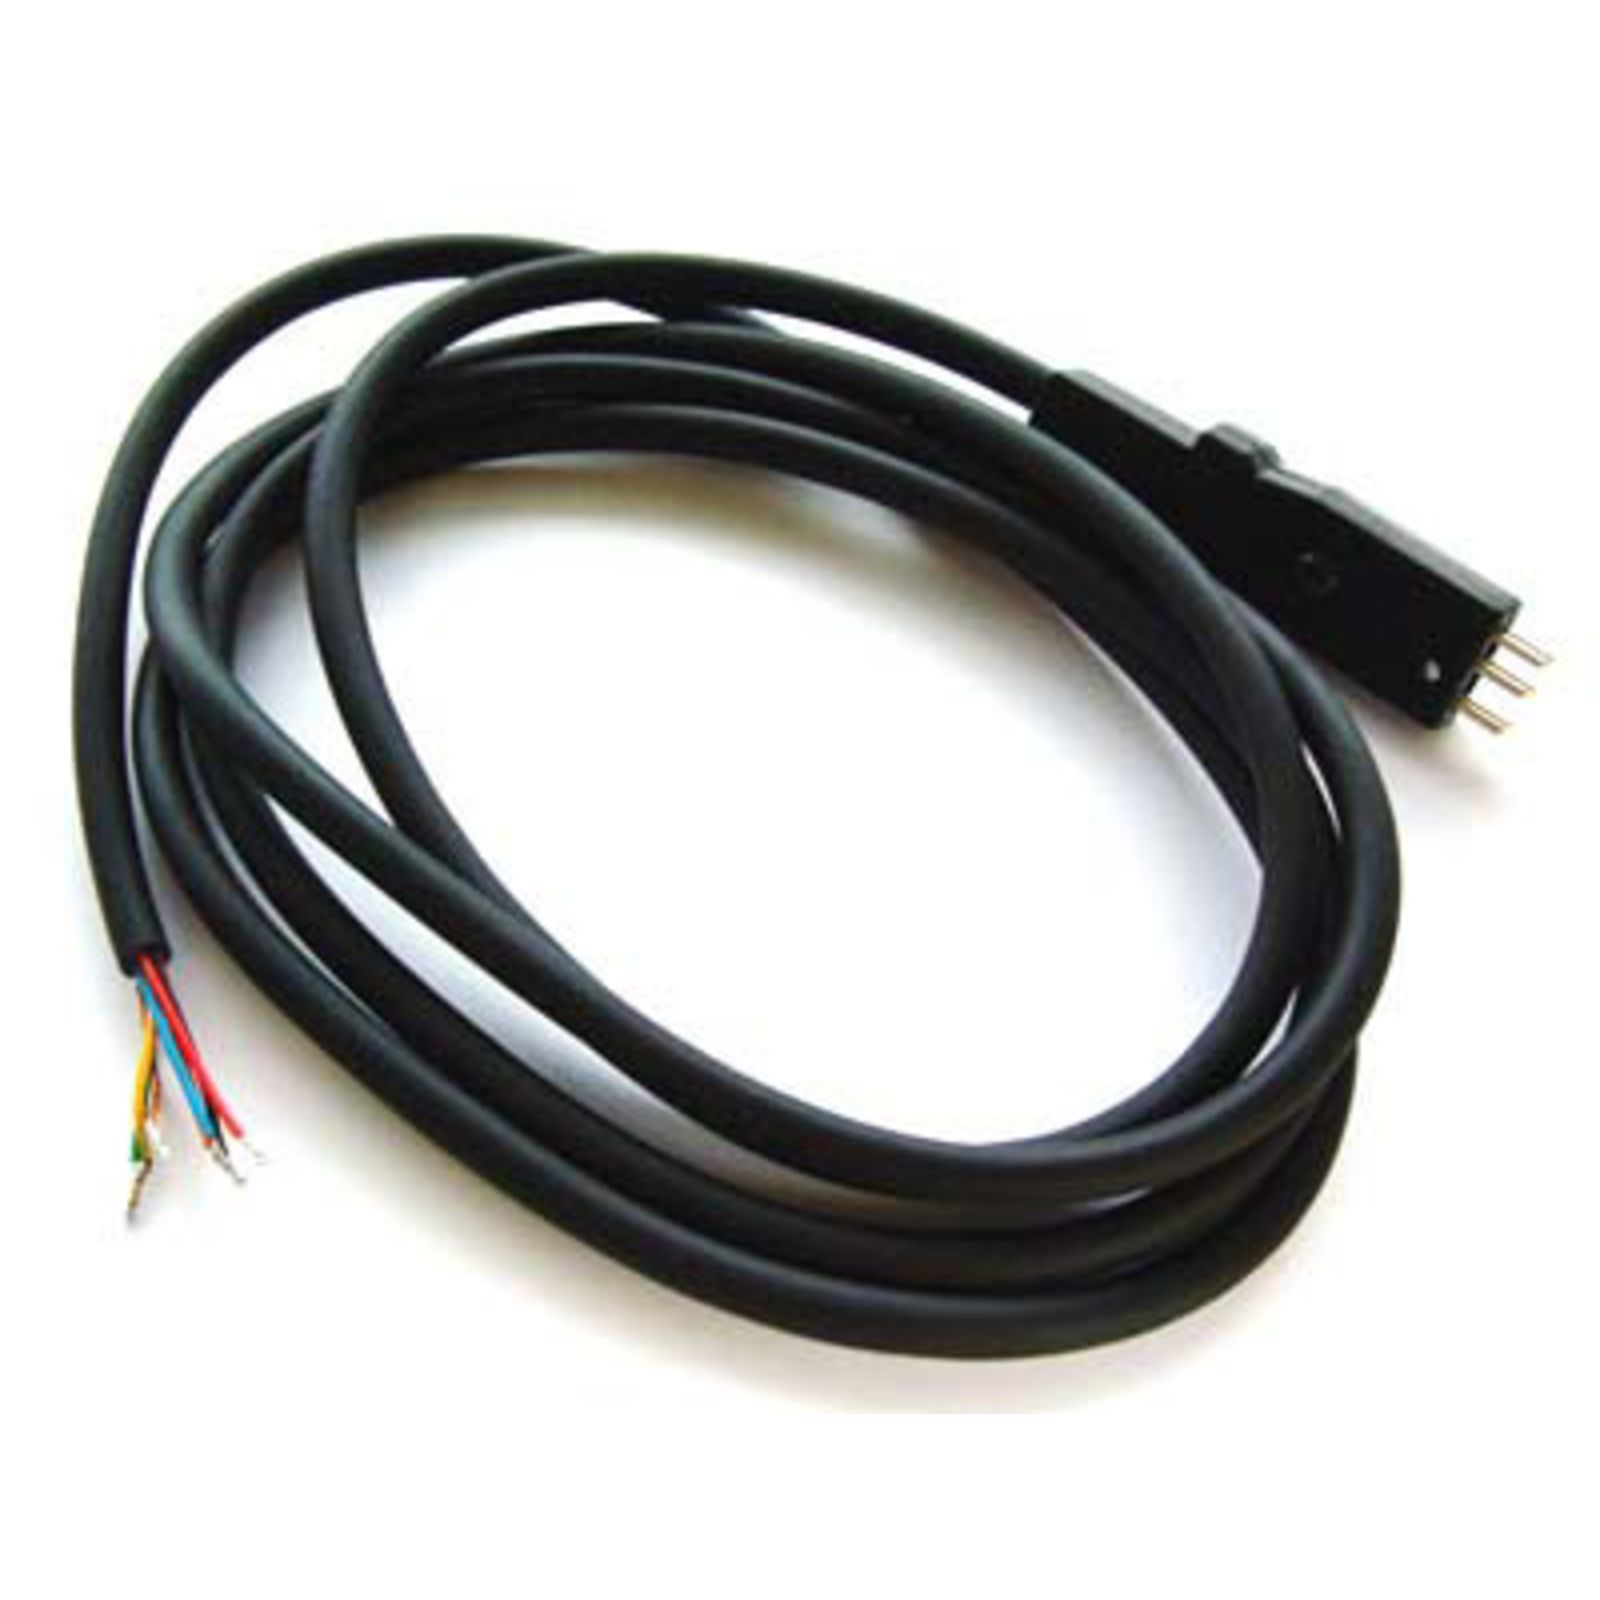 Beyerdynamic K 109.00 1.5m Connecting Cable  for DT 109 Series   Produktbillede